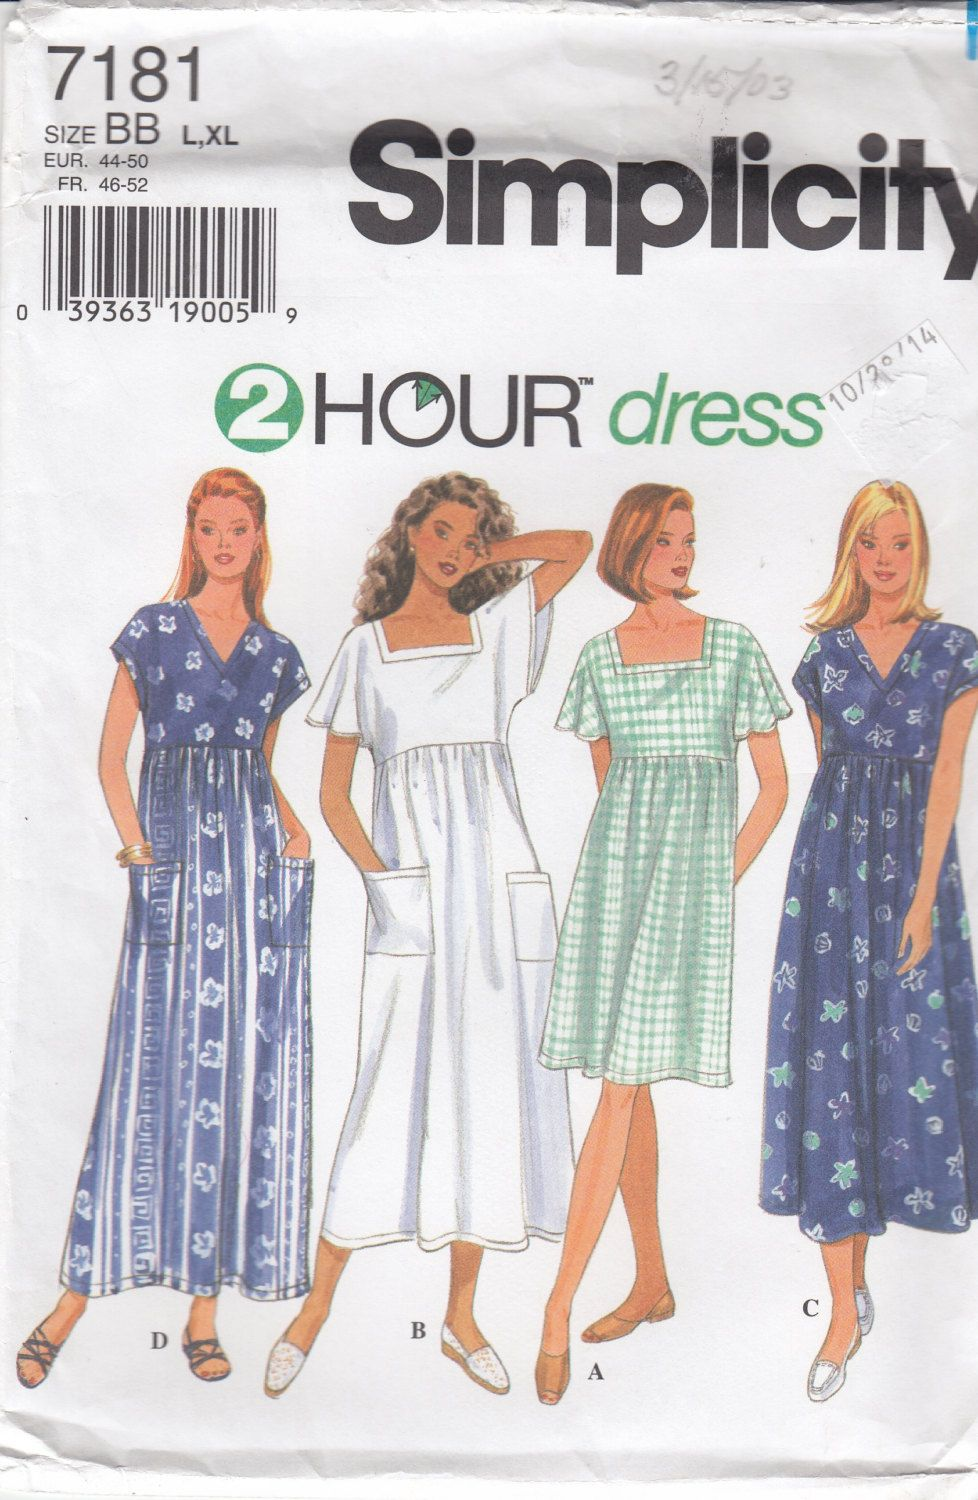 Comfortable Loose Fitting Summer Dress Baggy Pullover Dress Etsy Dress Sewing Patterns Linen Dress Pattern Empire Waist Dress Pattern [ 1500 x 978 Pixel ]